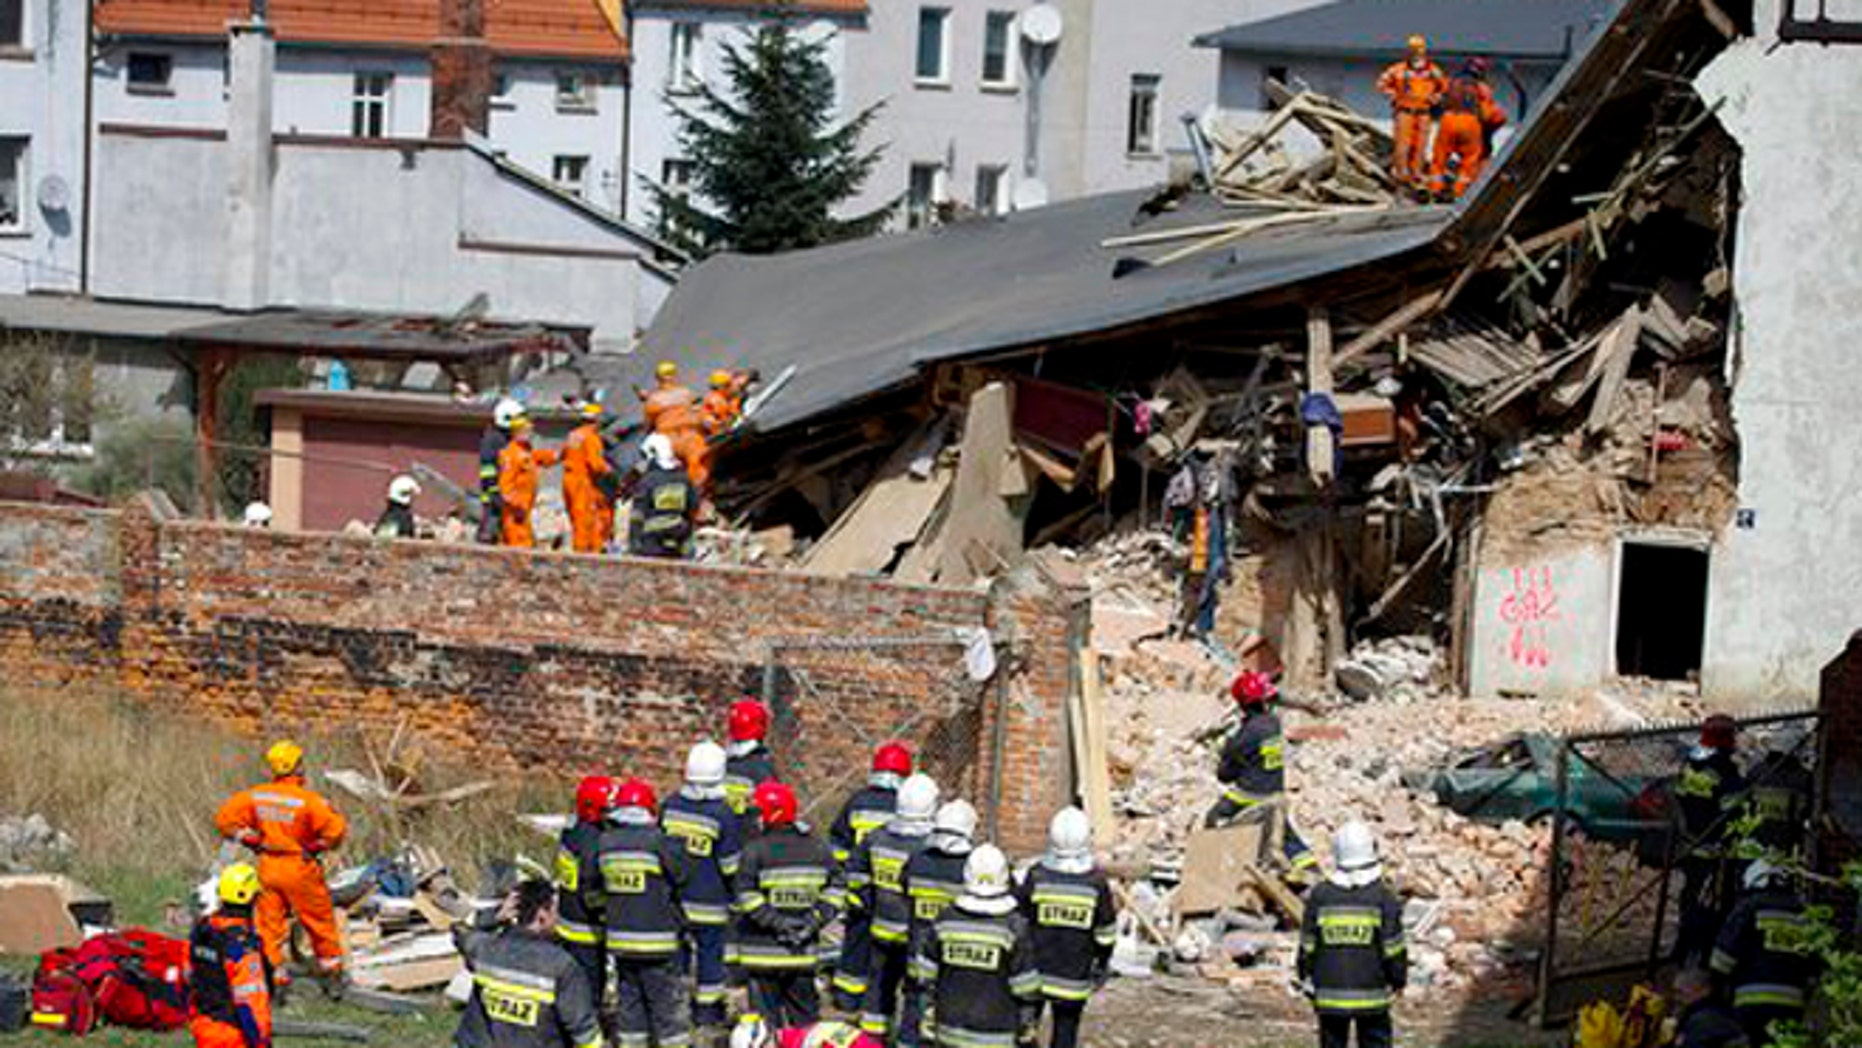 Rescuers and firefighters sift through the rubble of an apartment house that collapsed in Swiebodzice, Poland, on Saturday.